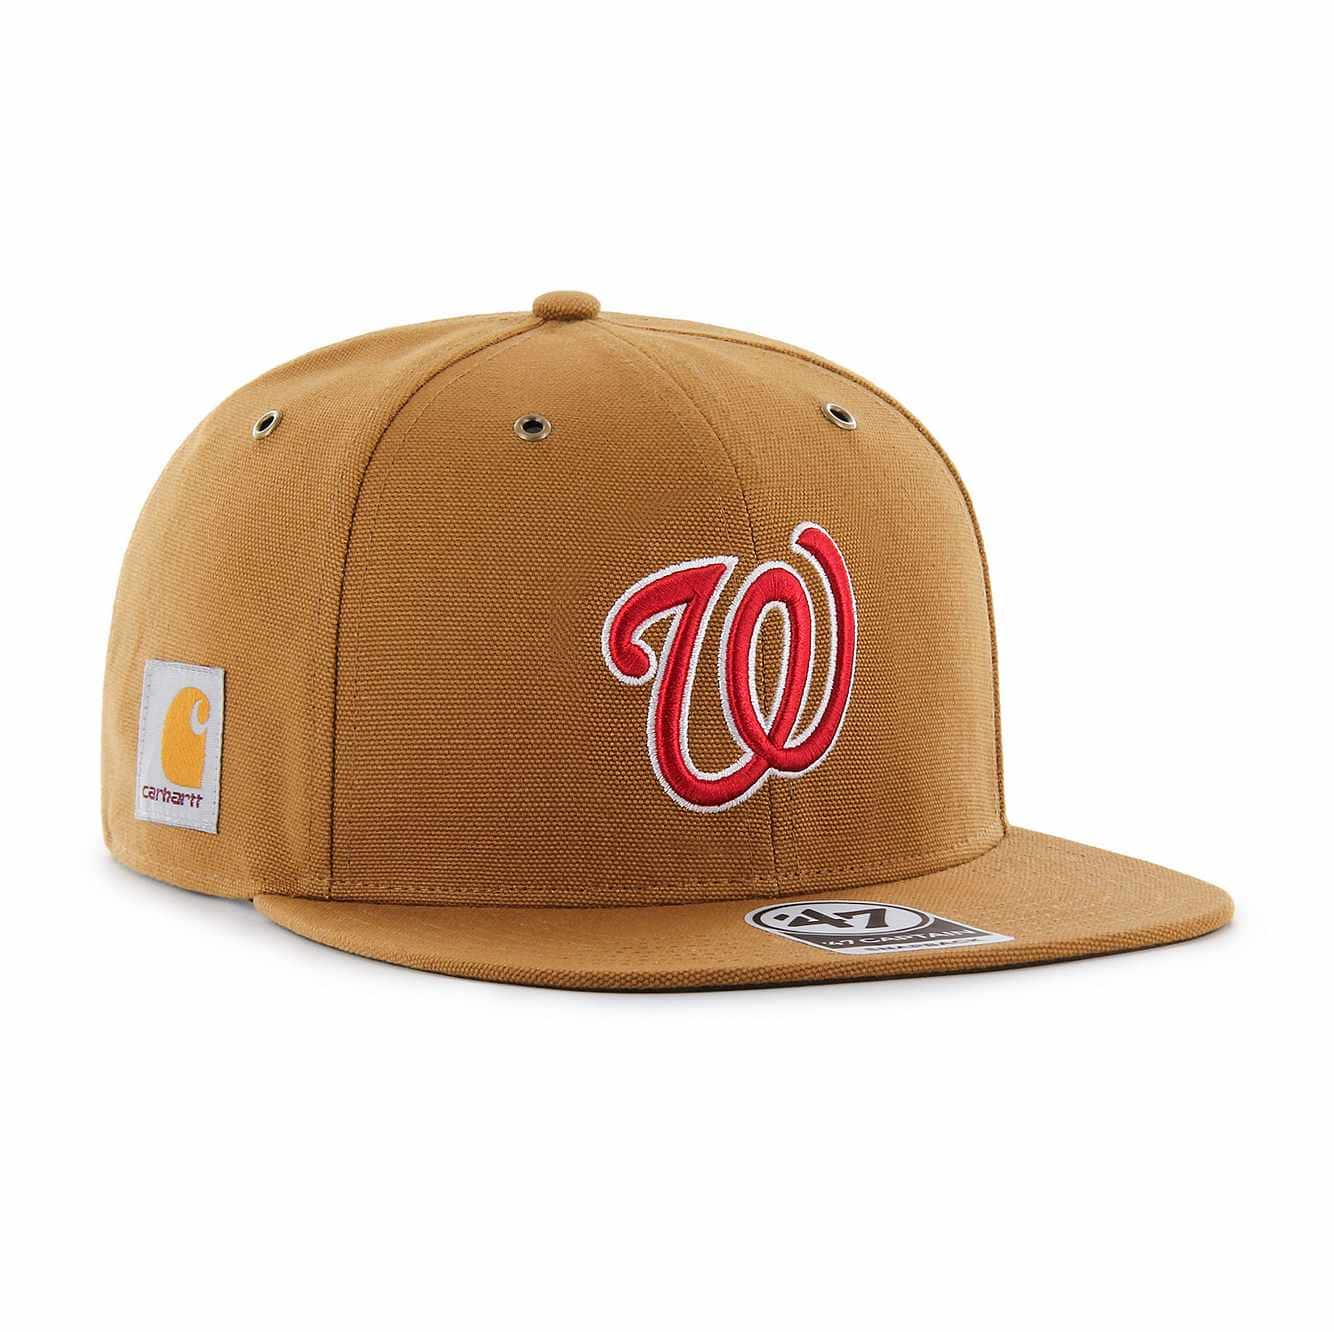 Picture of Washington Nationals Carhartt x '47 Captain in Carhartt Brown